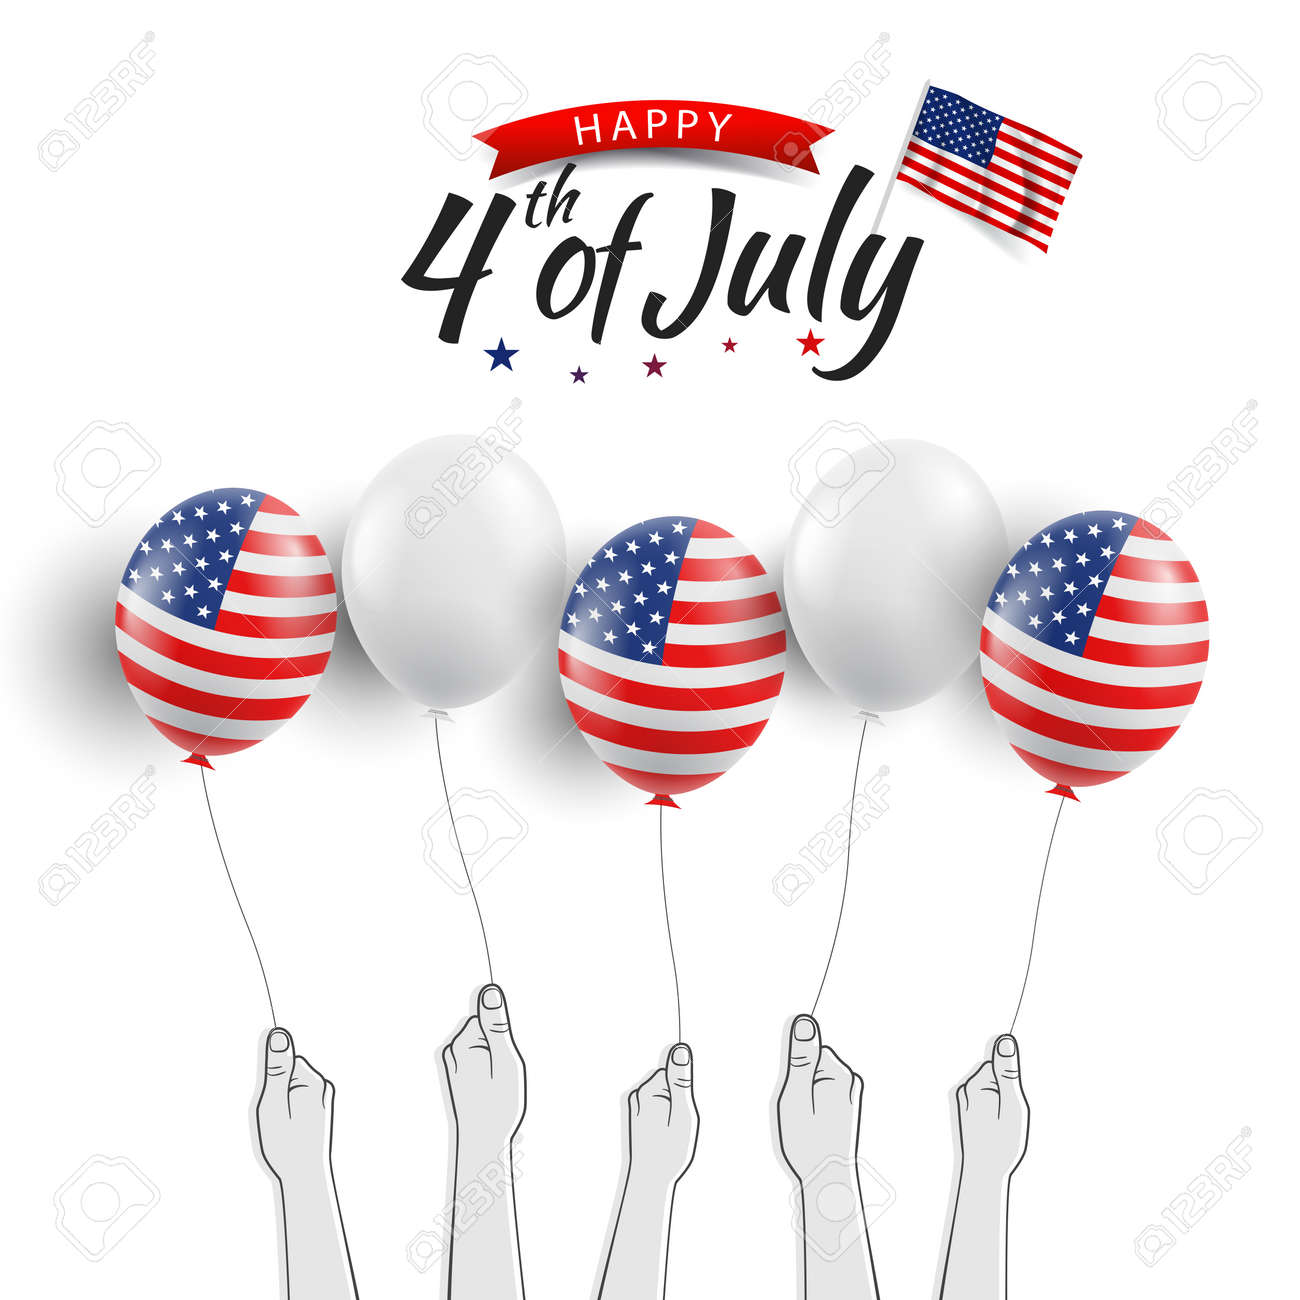 Vector illustration of the Fourth of July. Hands with US flag balloons - 170364543